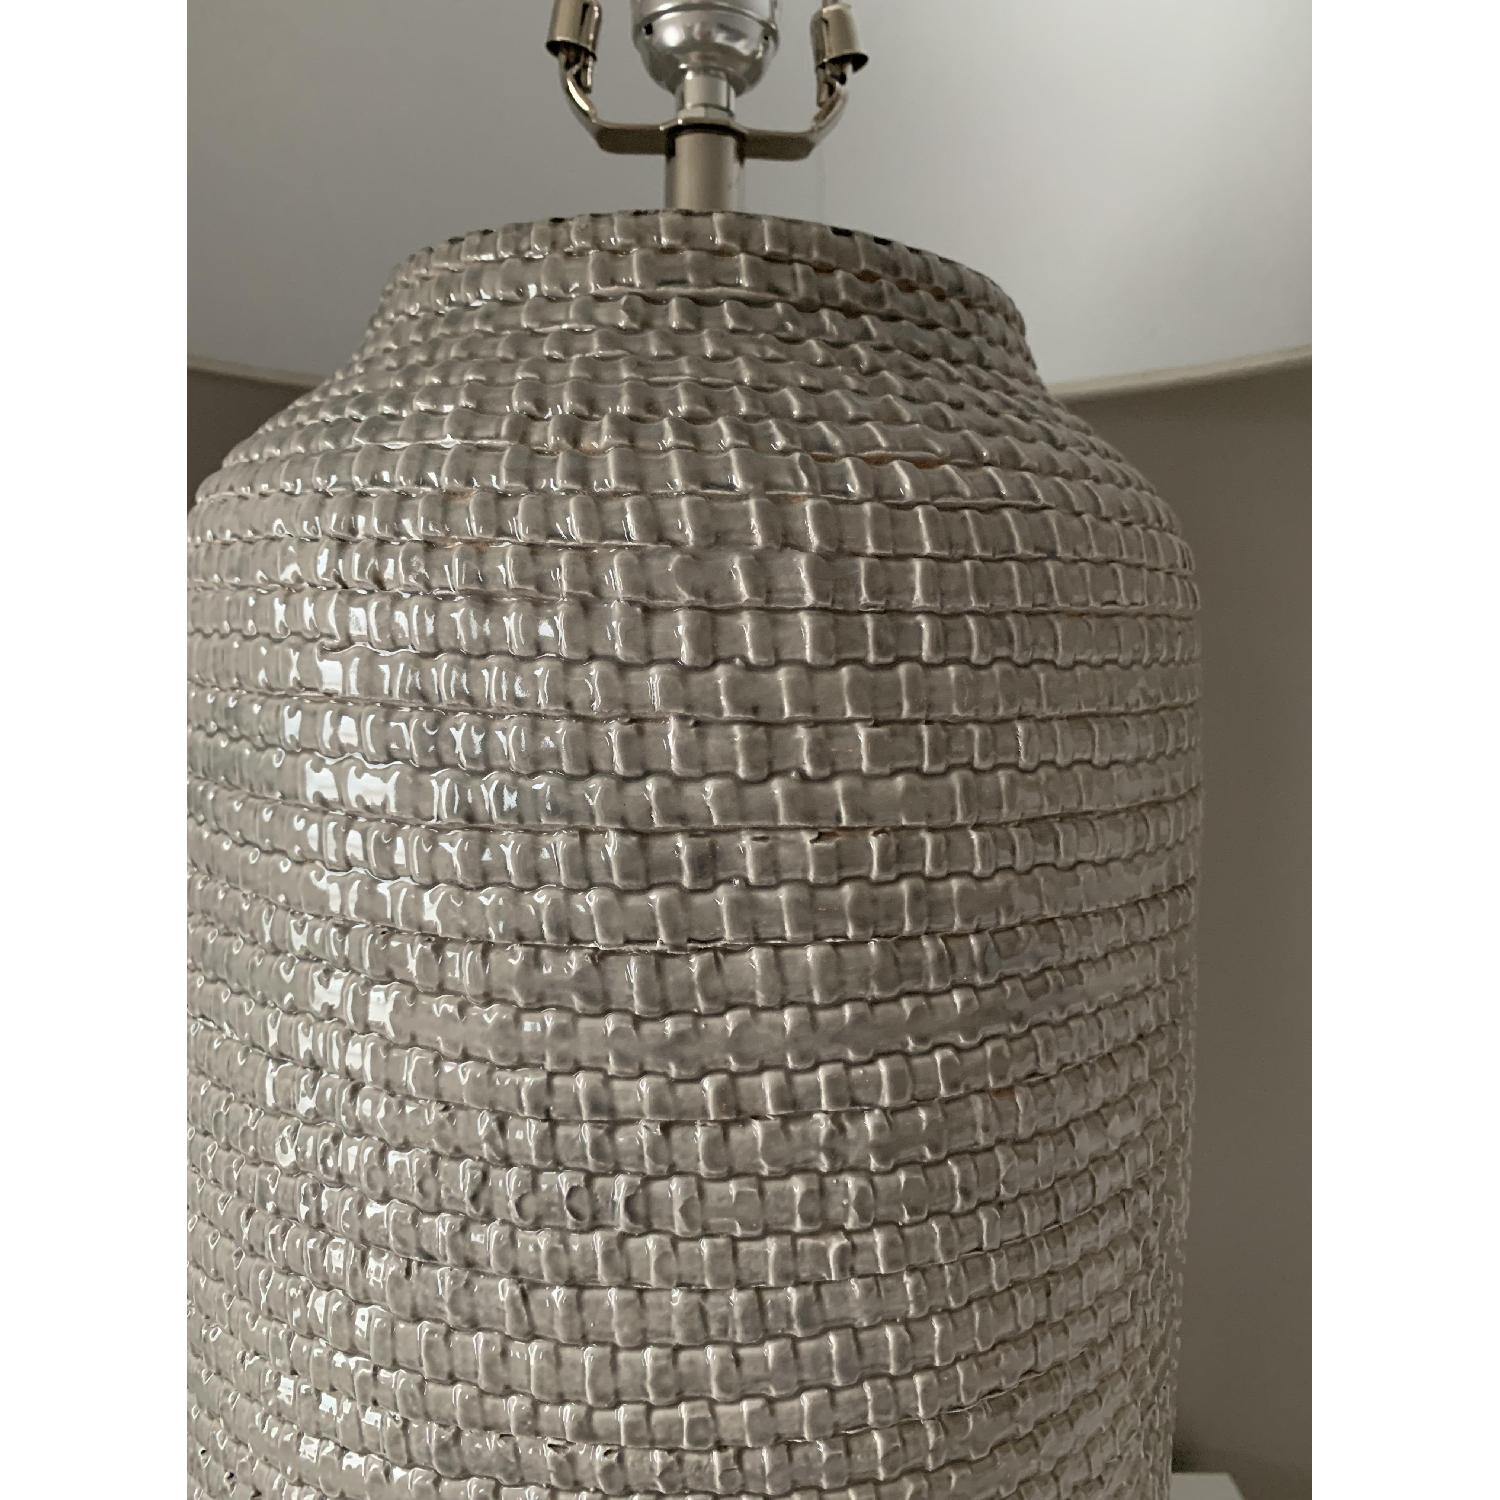 Crate & Barrel Cane Grey Table Lamp-5